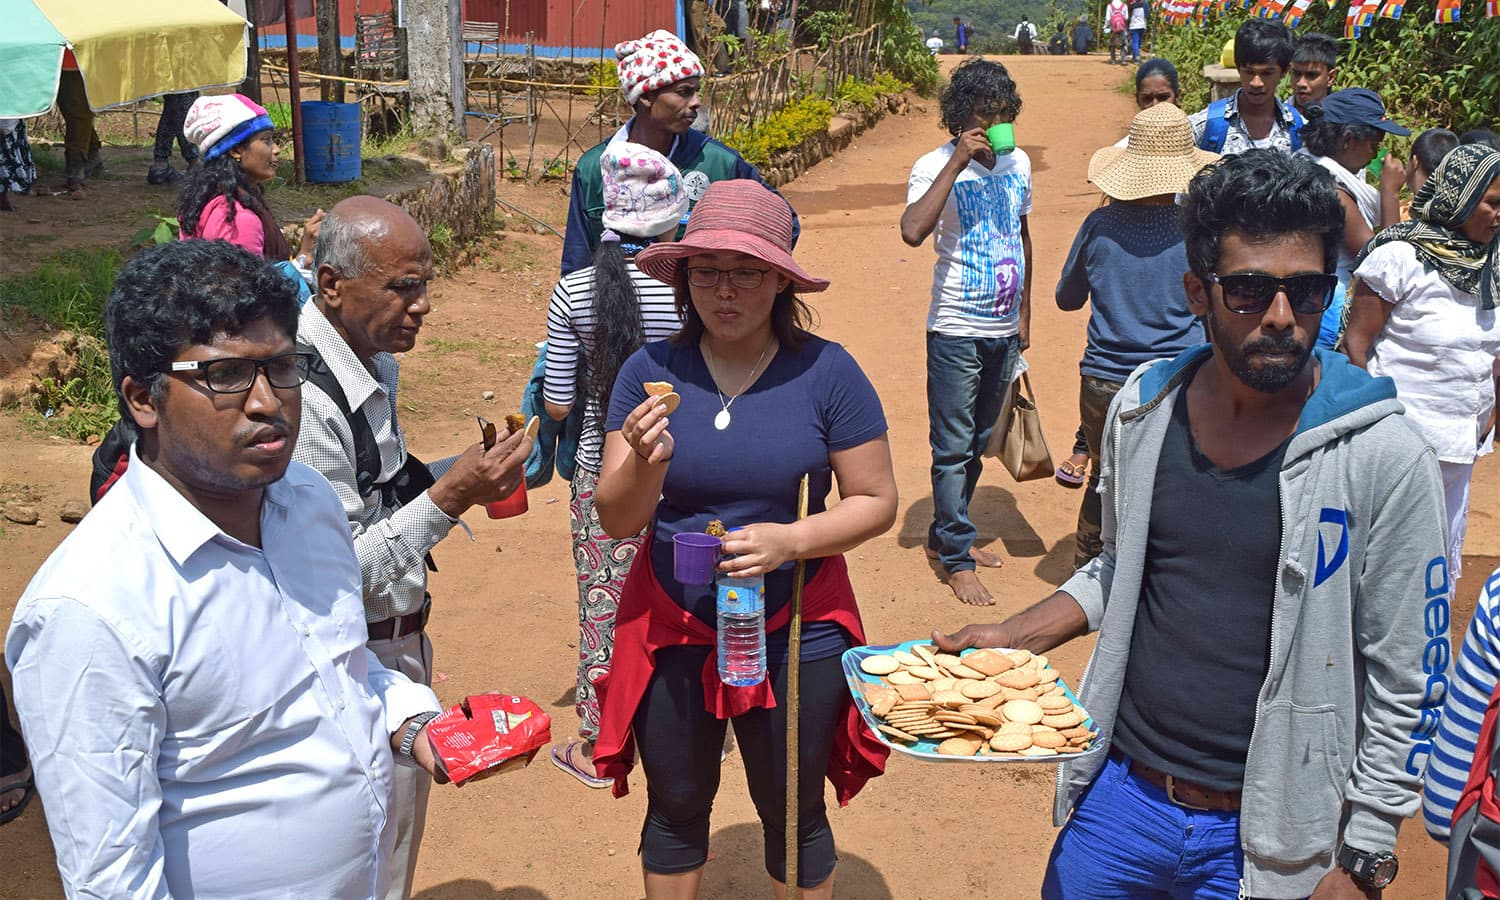 Volunteers help hand out food and water to pilgrims. —Photo by the author